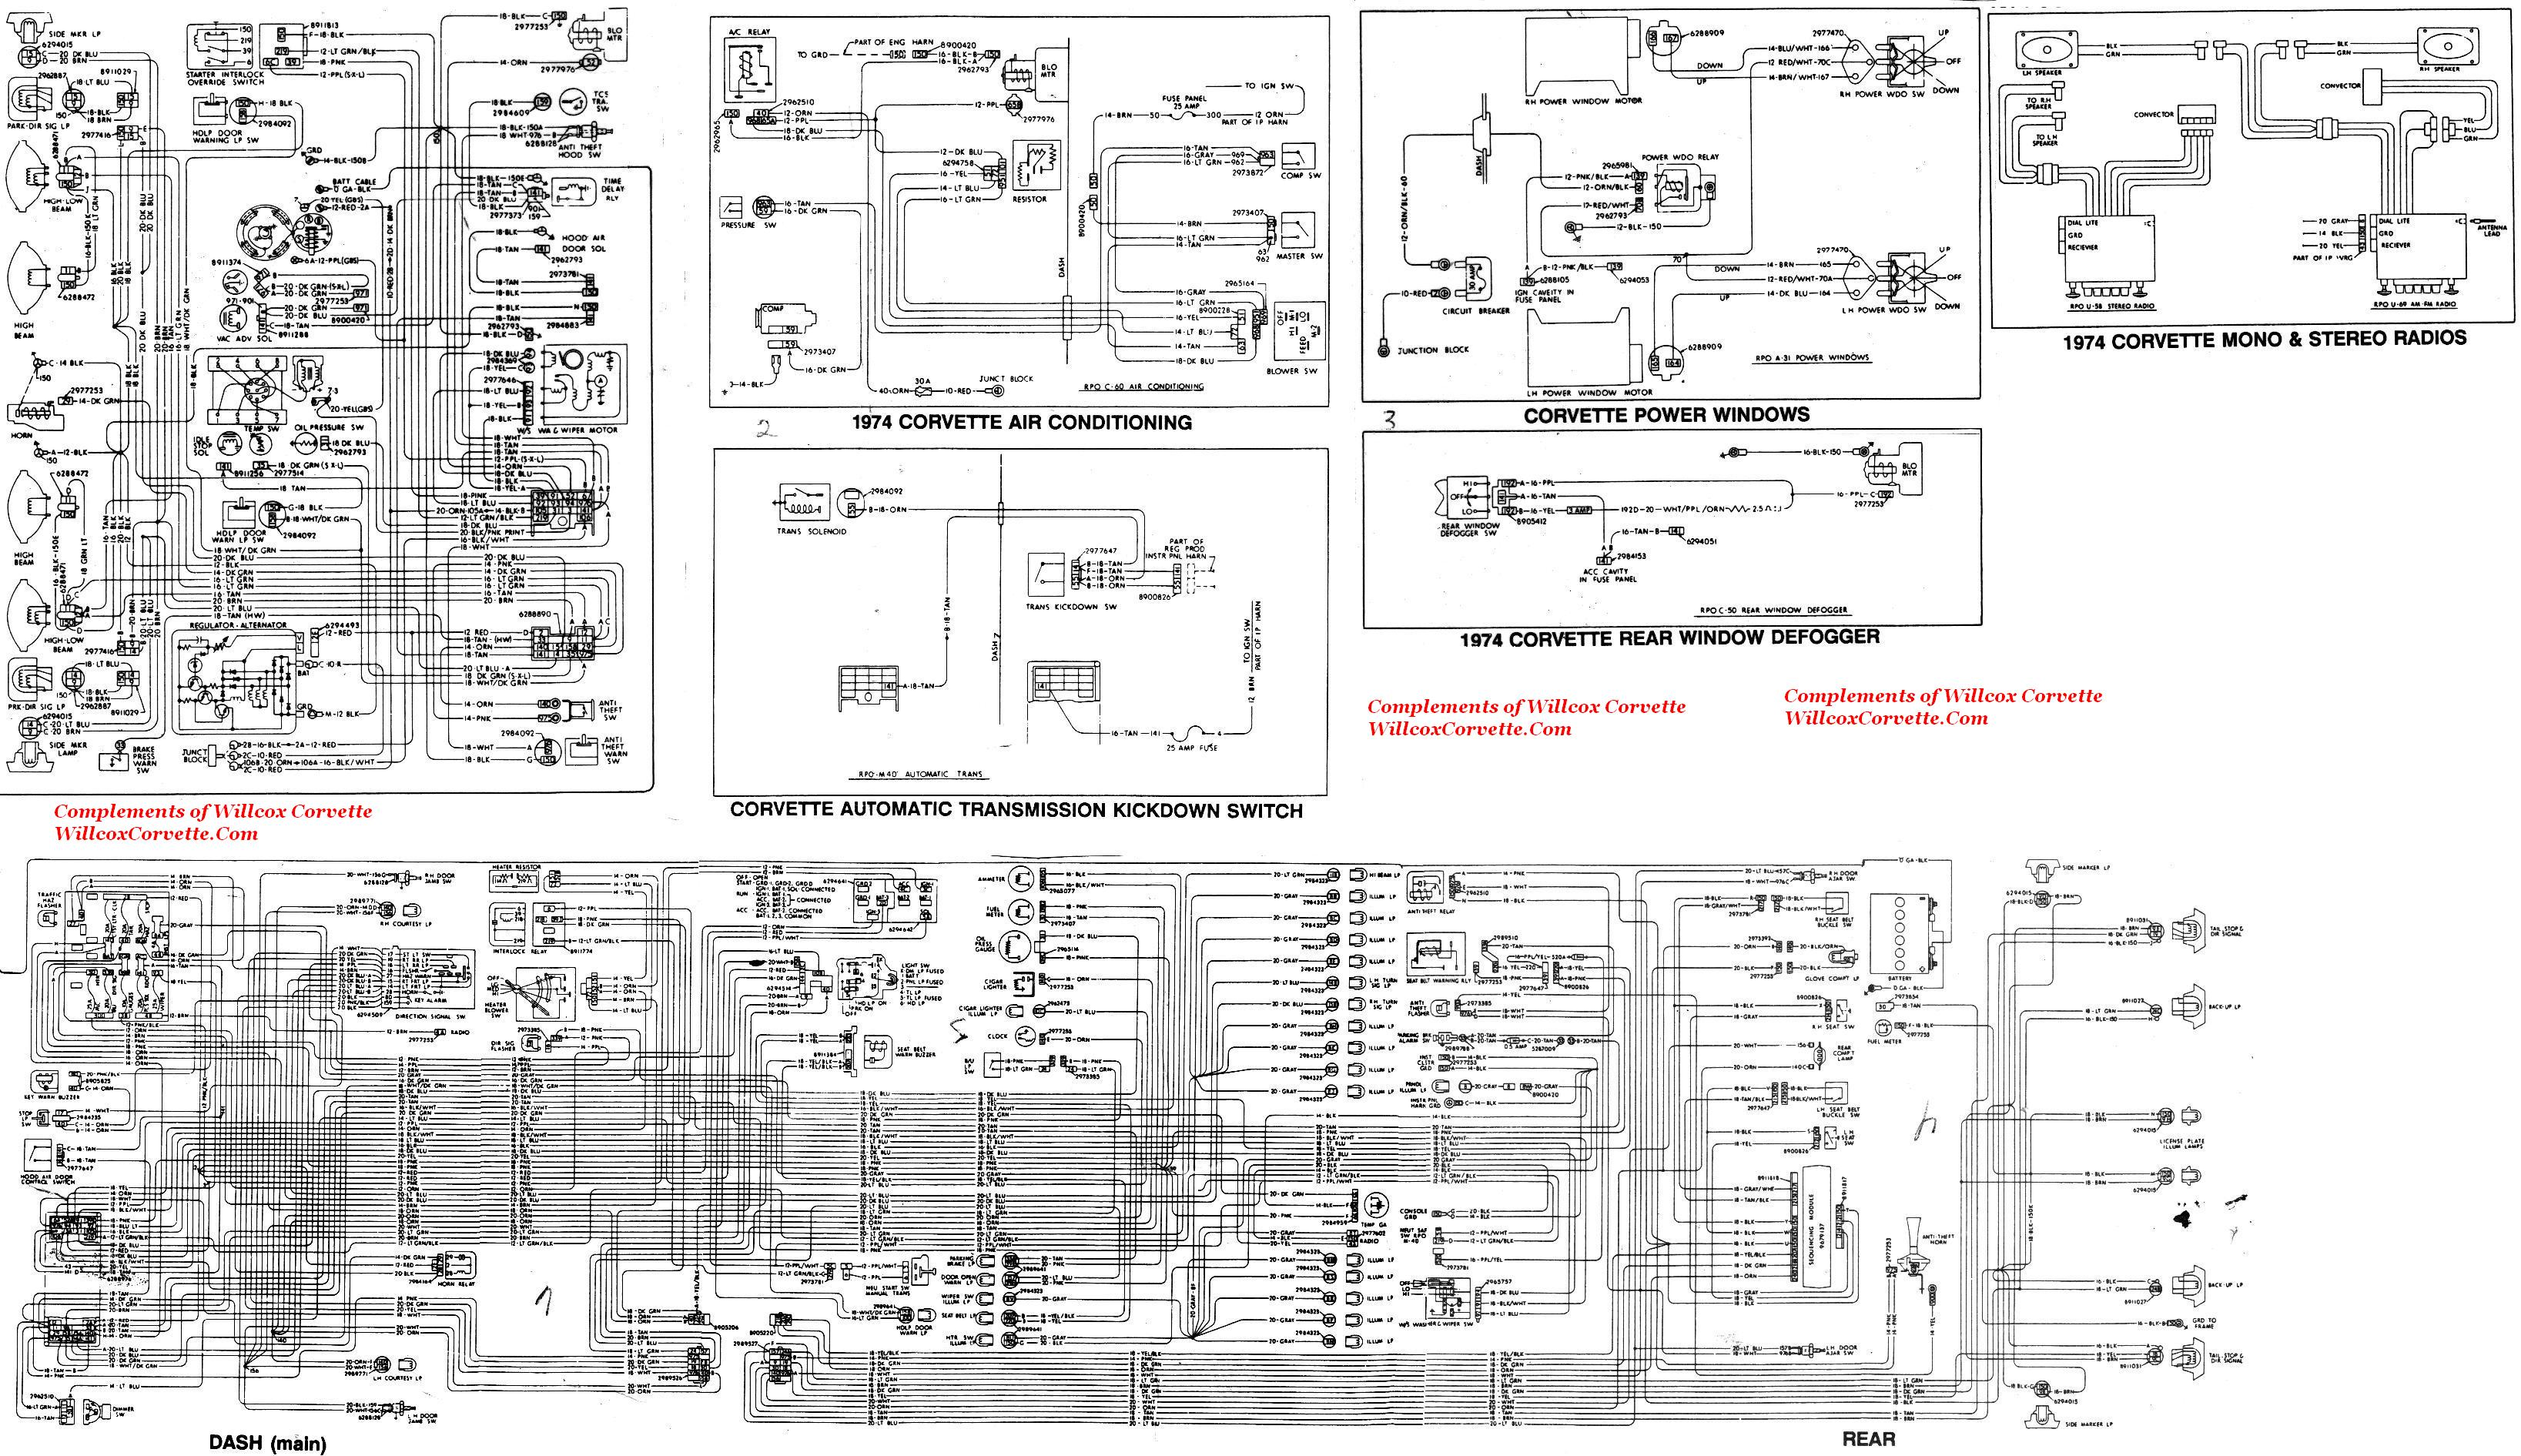 1974 corvette wiring harness - wiring diagram export nut-bitter -  nut-bitter.congressosifo2018.it  congressosifo2018.it